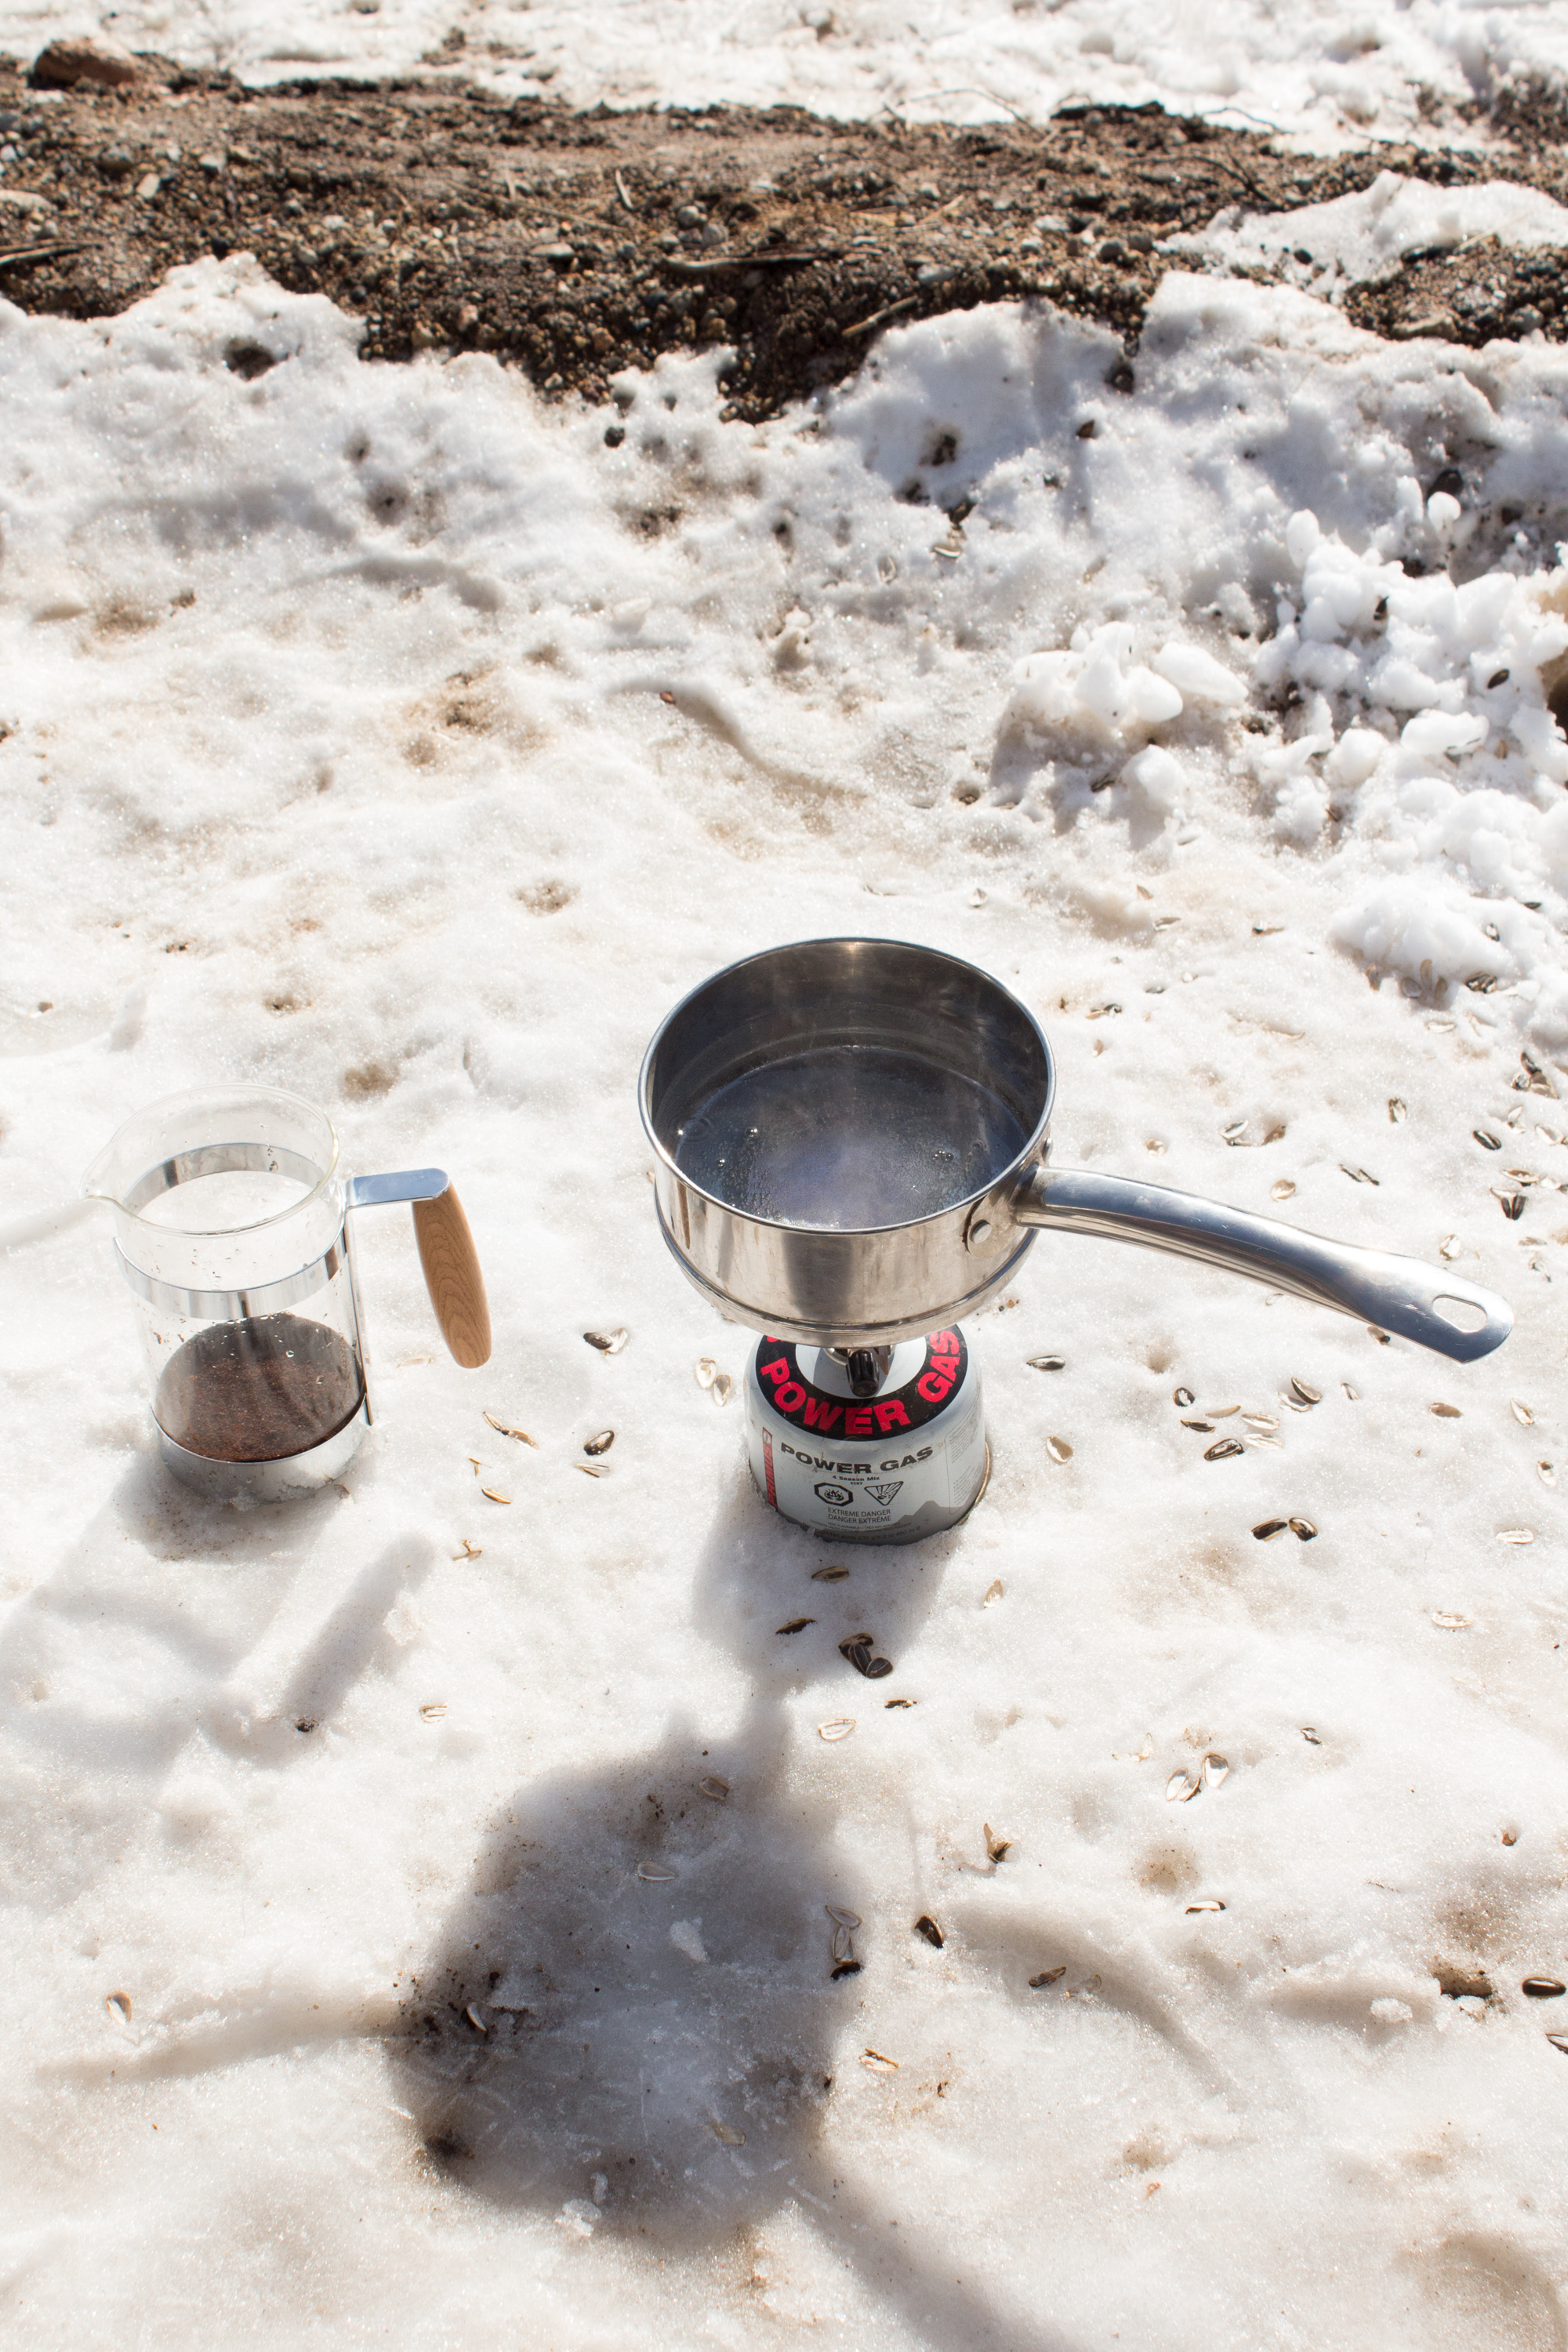 Boiling water for some coffee, #vanlife style.